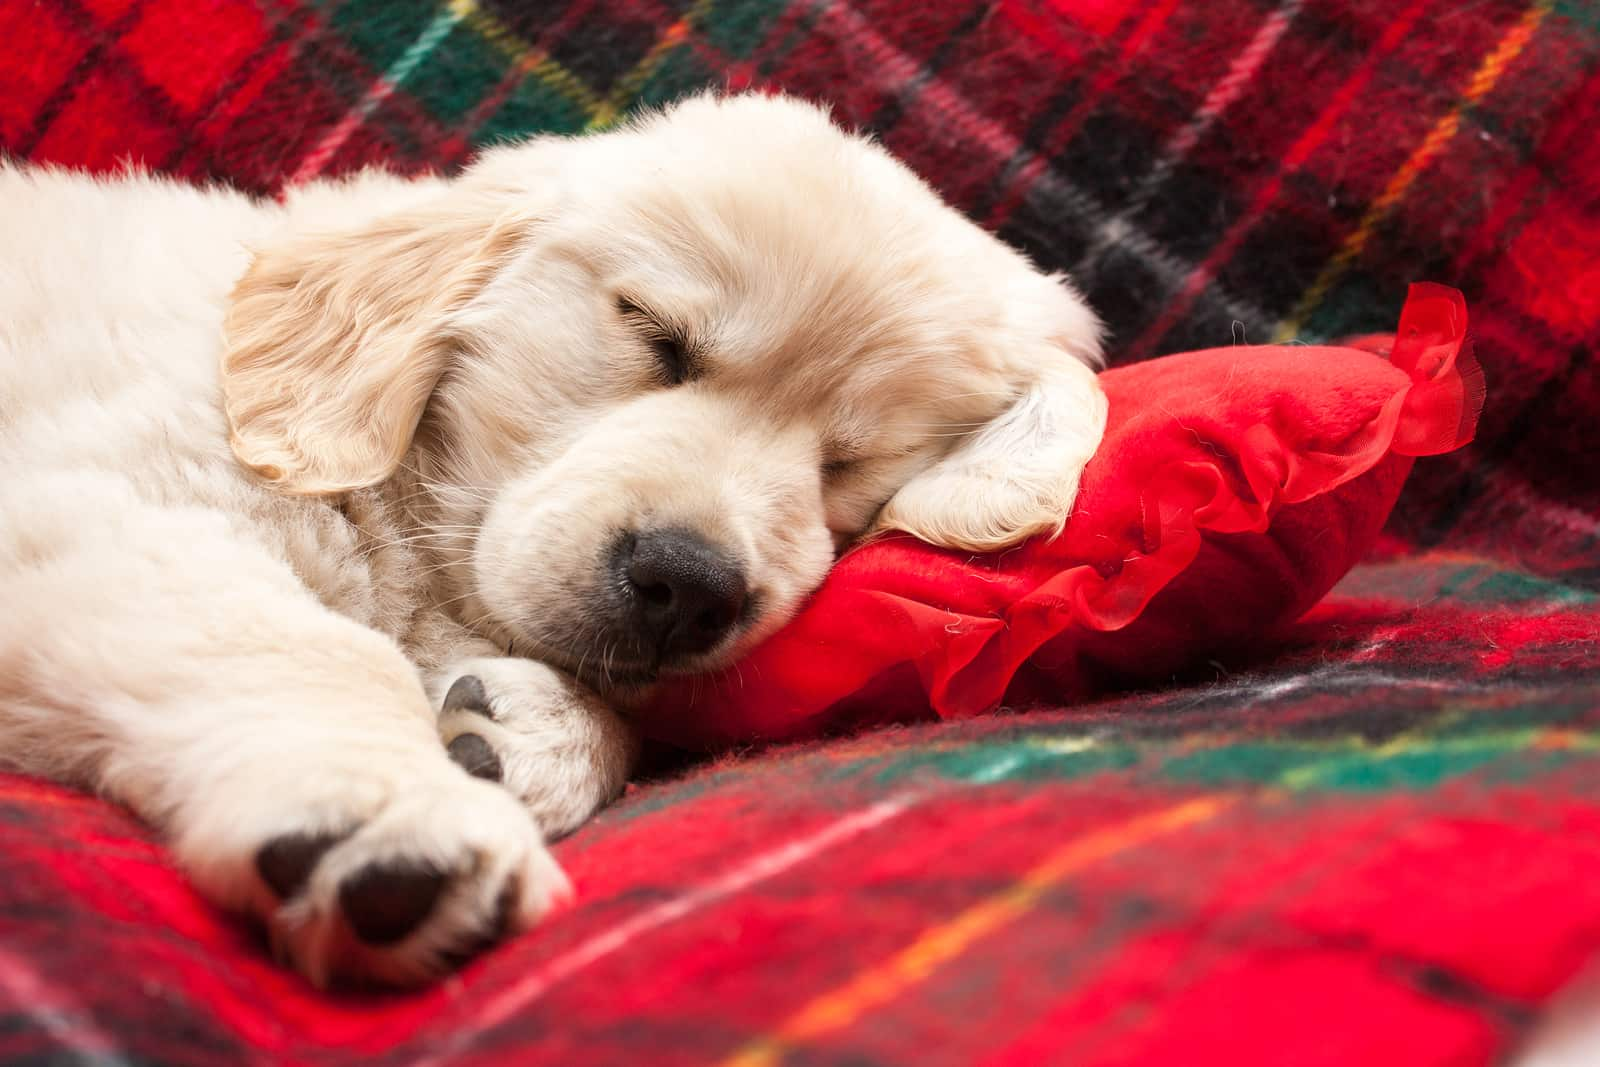 Golden retriever puppy asleep on red flannel blanket.